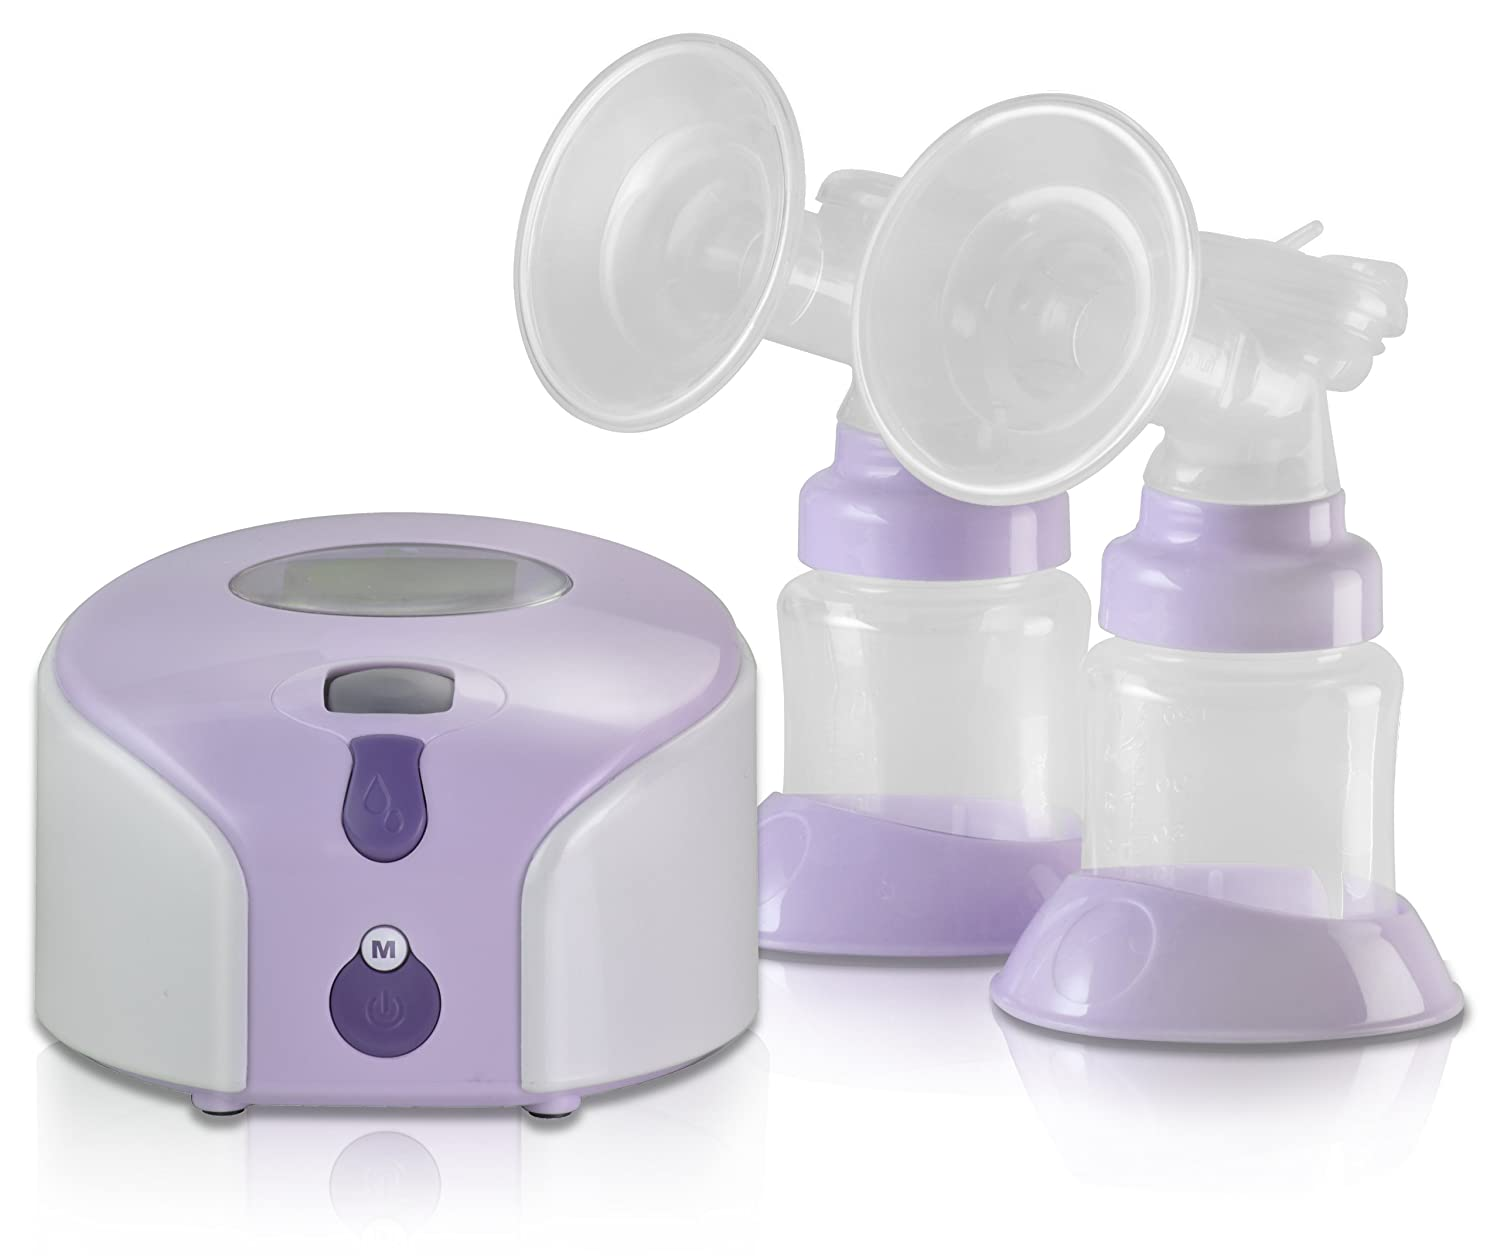 Top 10 Best Hospital Grade Electric Breast Pumps 2018-2019 - cover